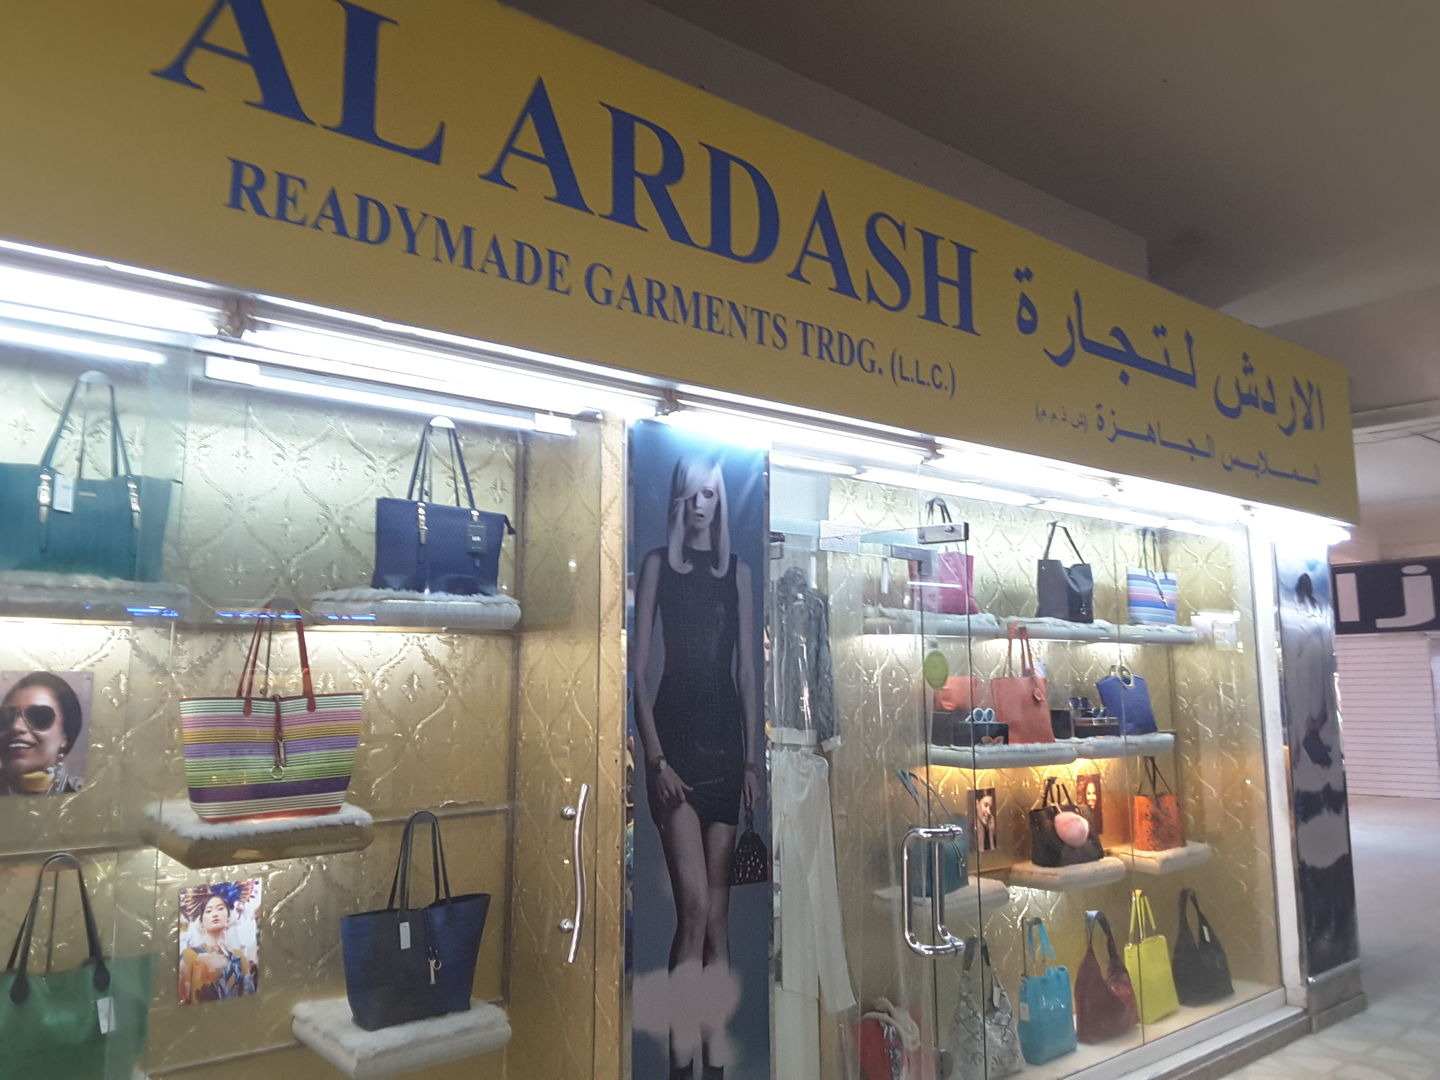 HiDubai-business-al-ardash-readymade-garments-trading-shopping-fashion-accessories-al-karama-dubai-2